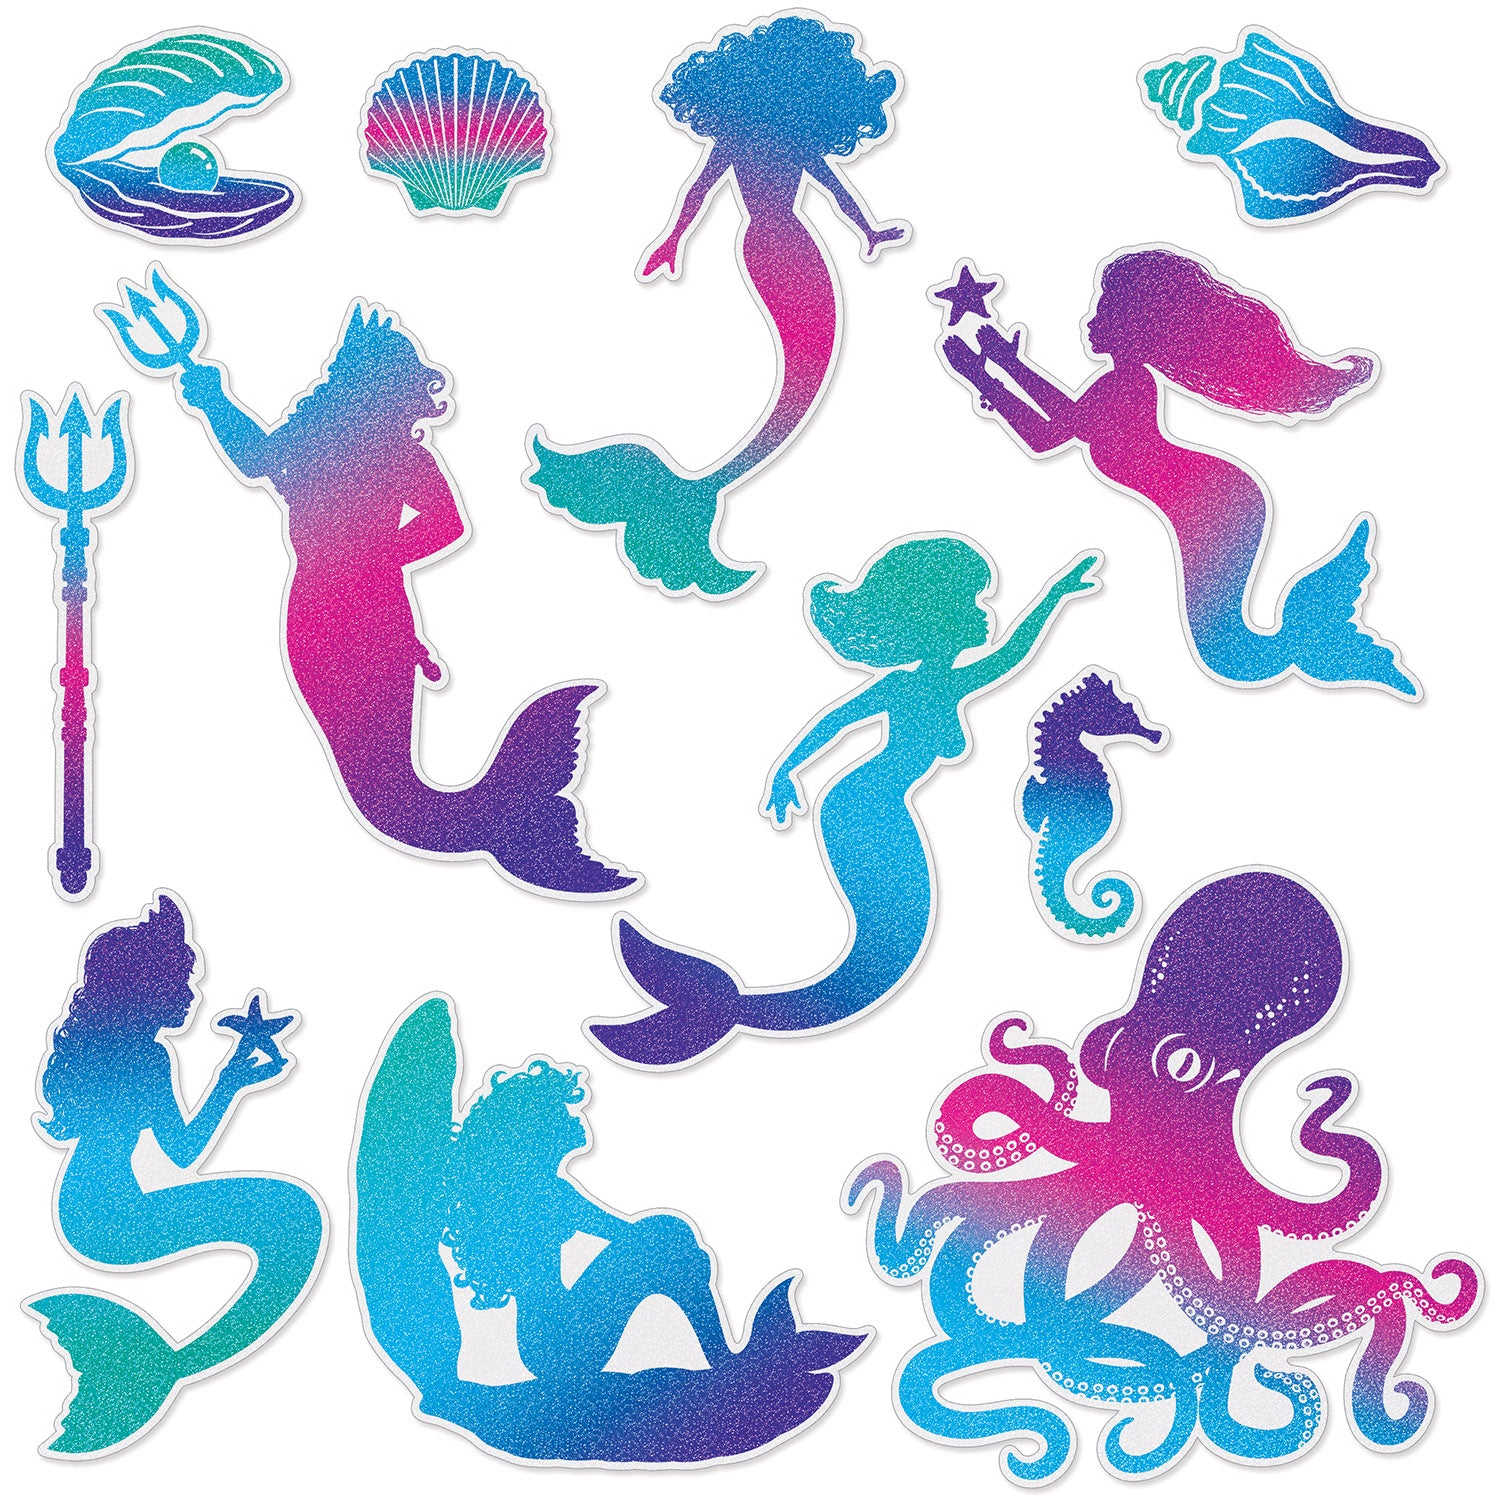 Mermaid Cutouts (12/Pkg) by Beistle - Mermaid Theme Decorations